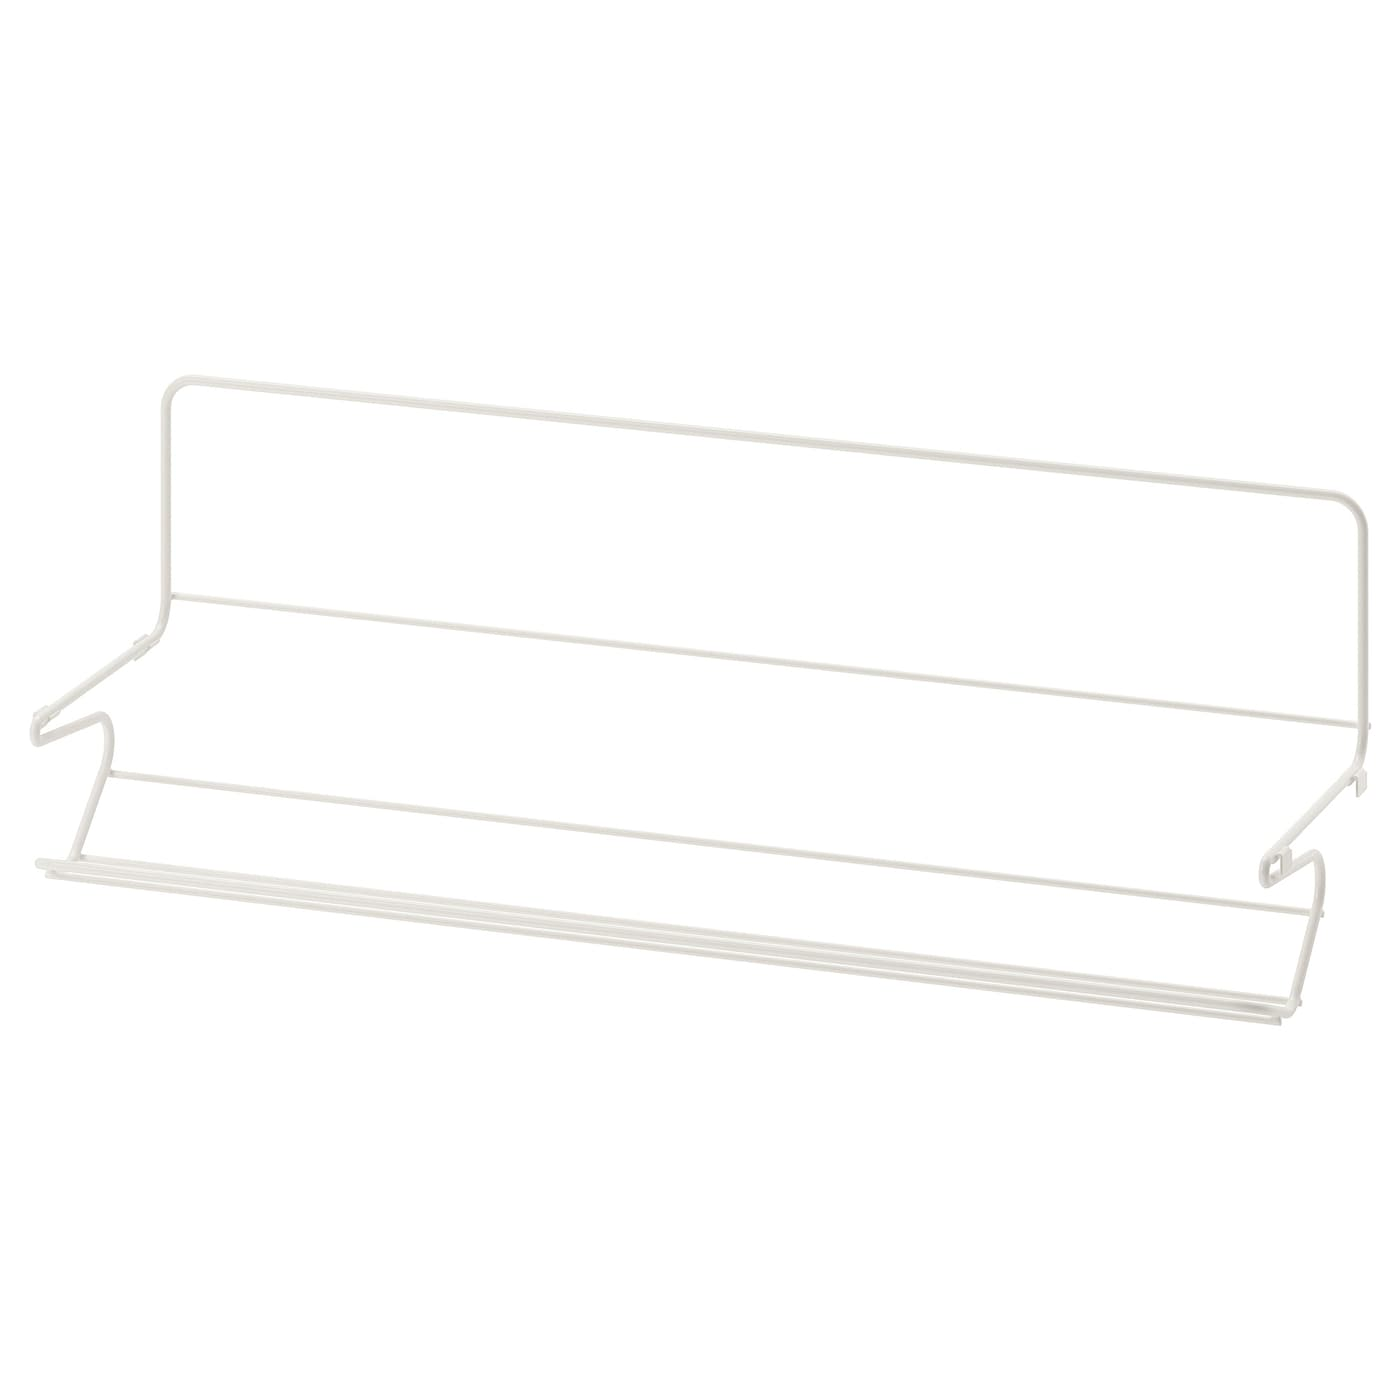 IKEA ALGOT shoe organiser Just click in on ALGOT brackets – no tools needed.